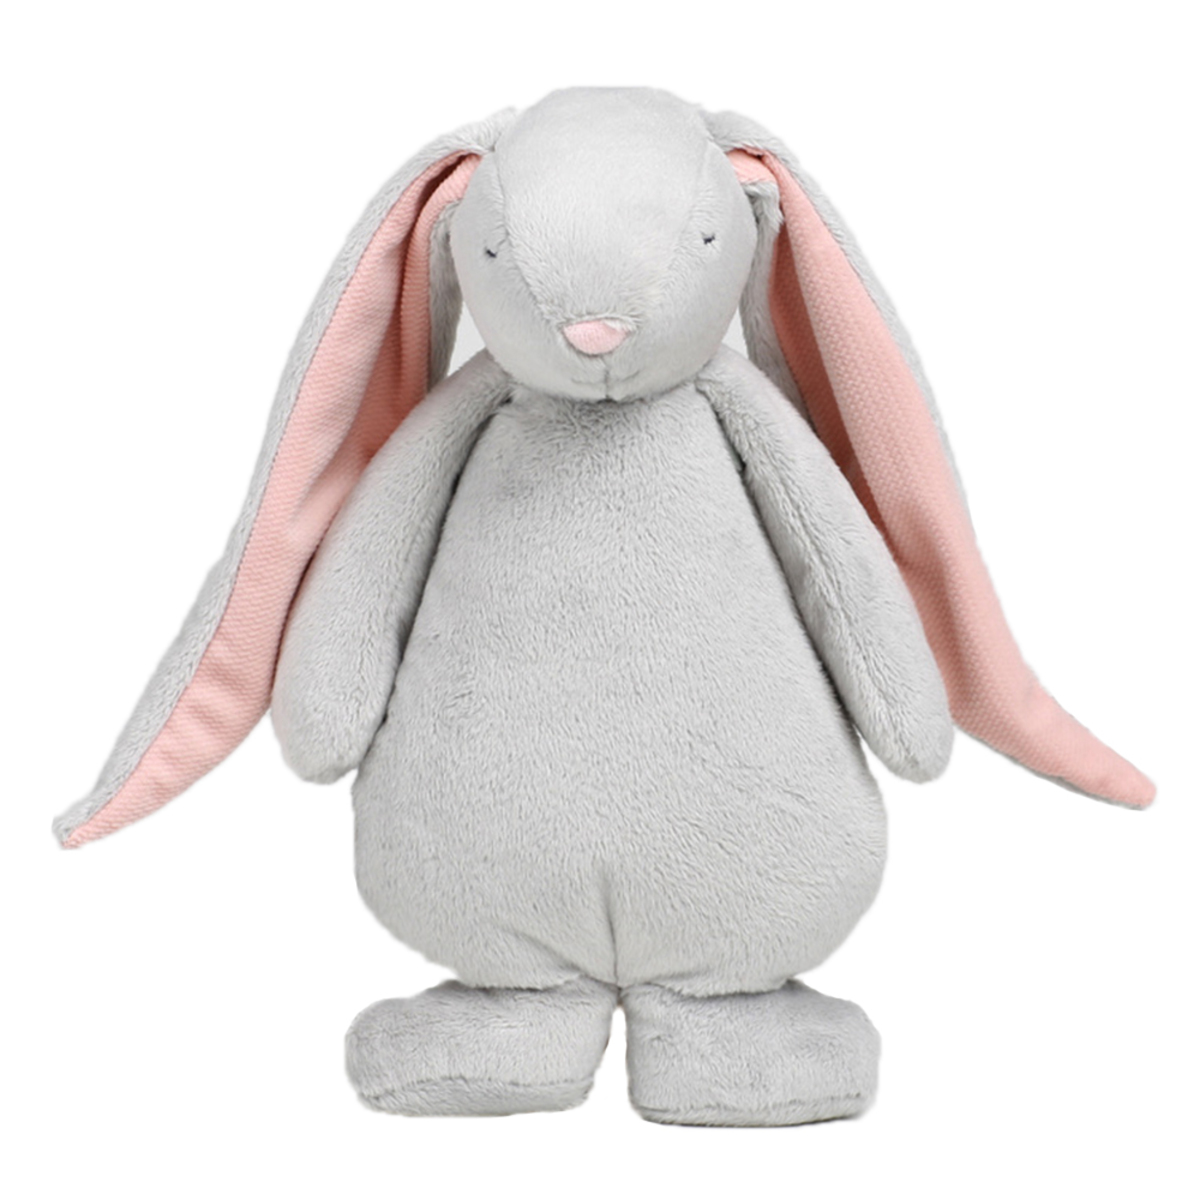 Peluche Veilleuse Musicale Lapin Moonie Cloud